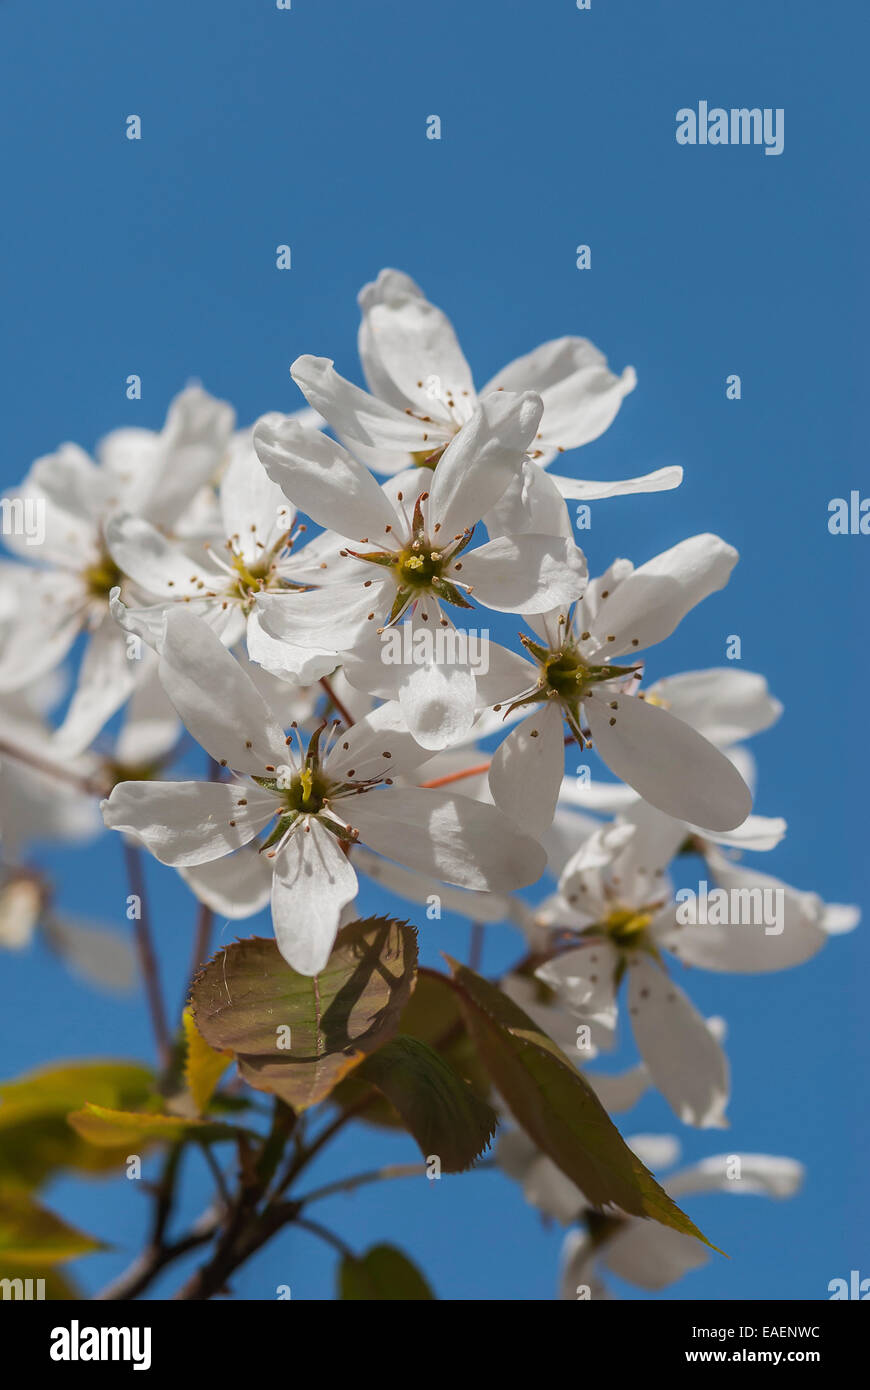 White fruit tree blossom in full bloom against a clear blue Spring sky. - Stock Image